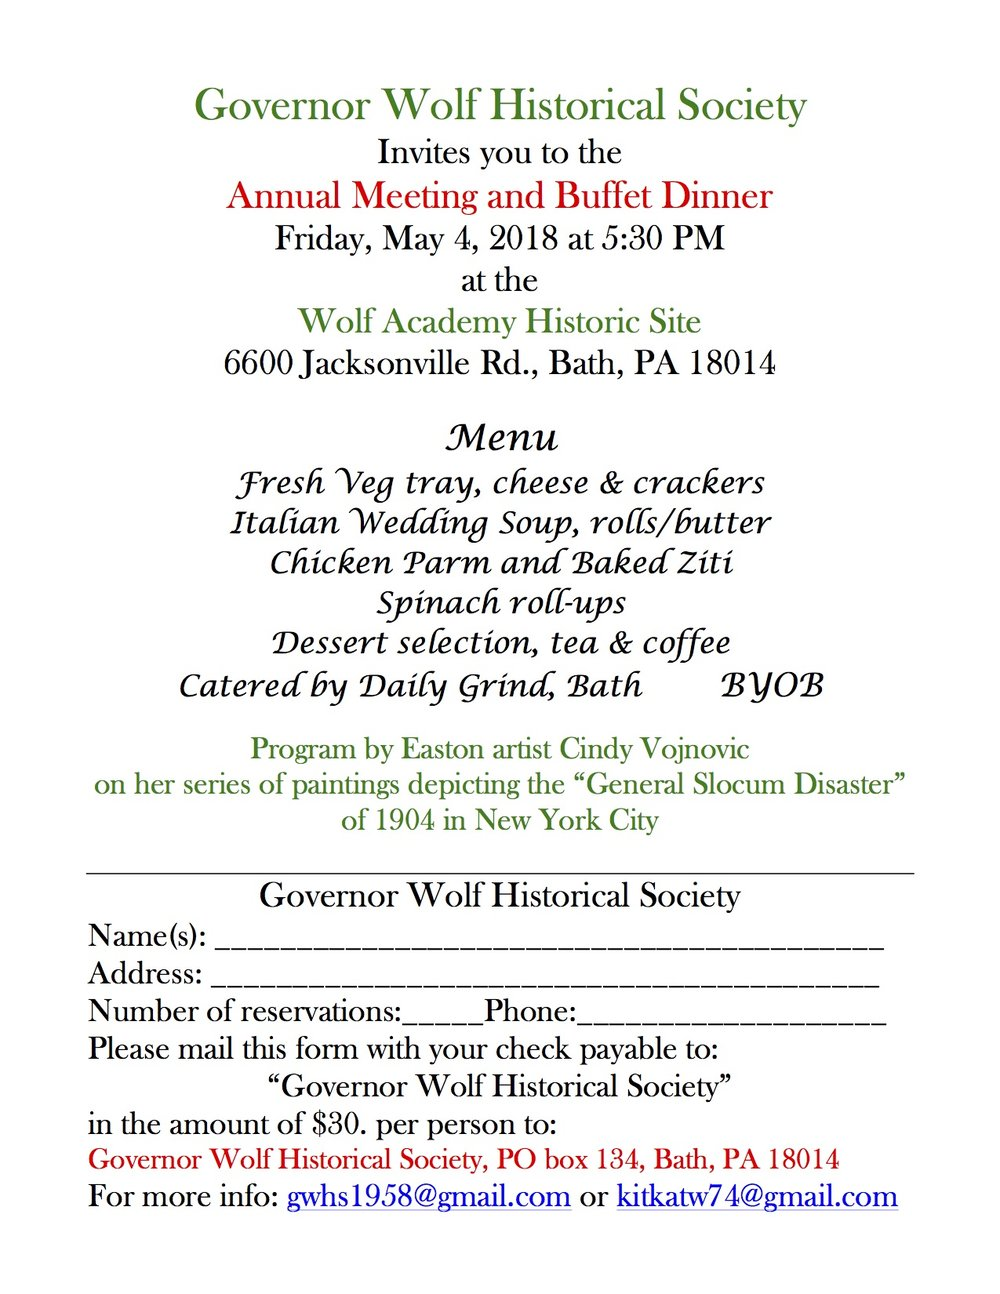 2018 Annual Dinner flyer - jpeg.jpg